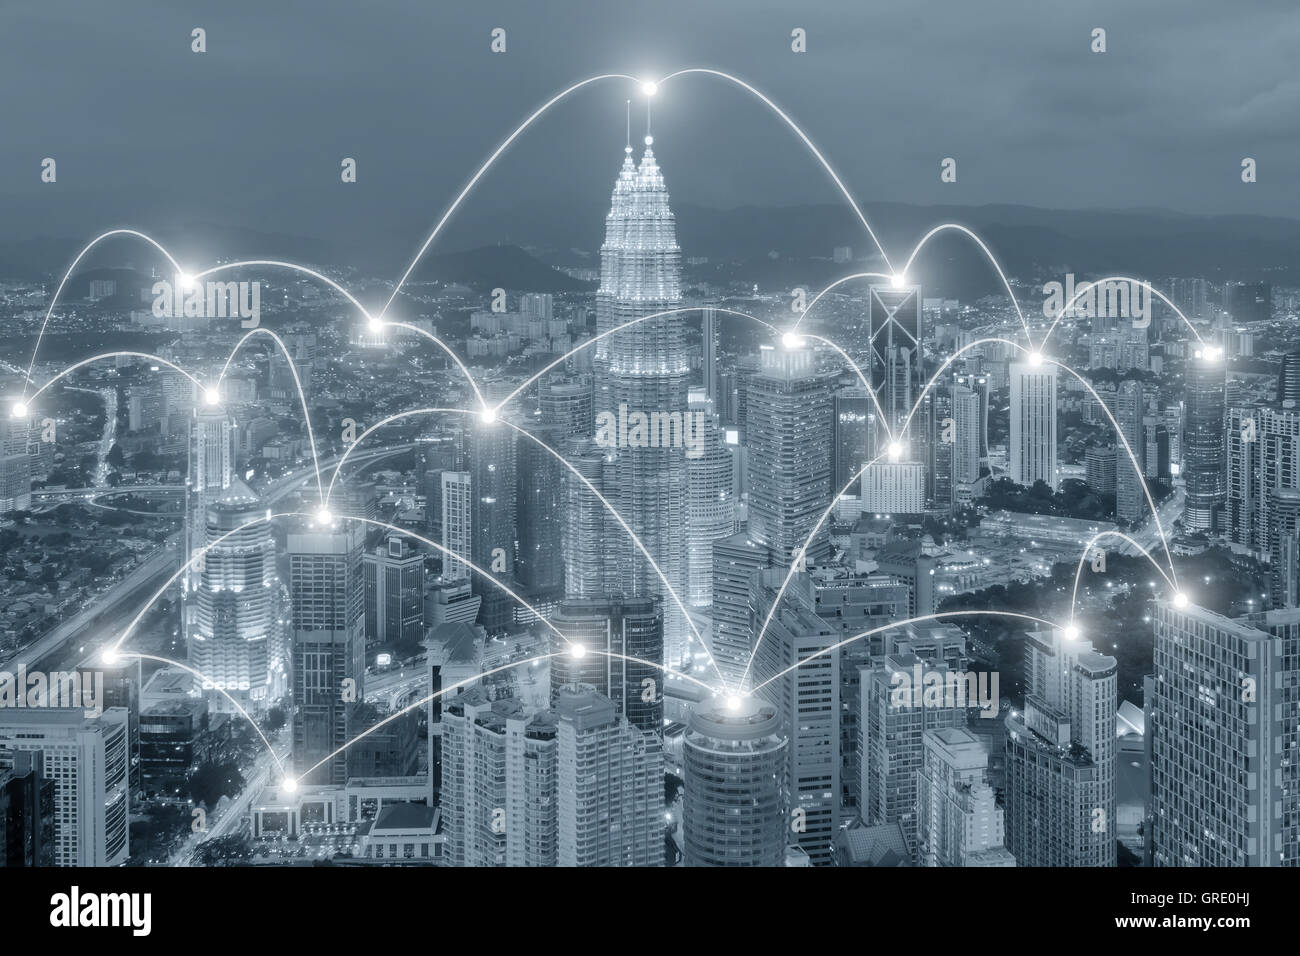 Network business connection concept - Network business connection system on cityscape background - Stock Image